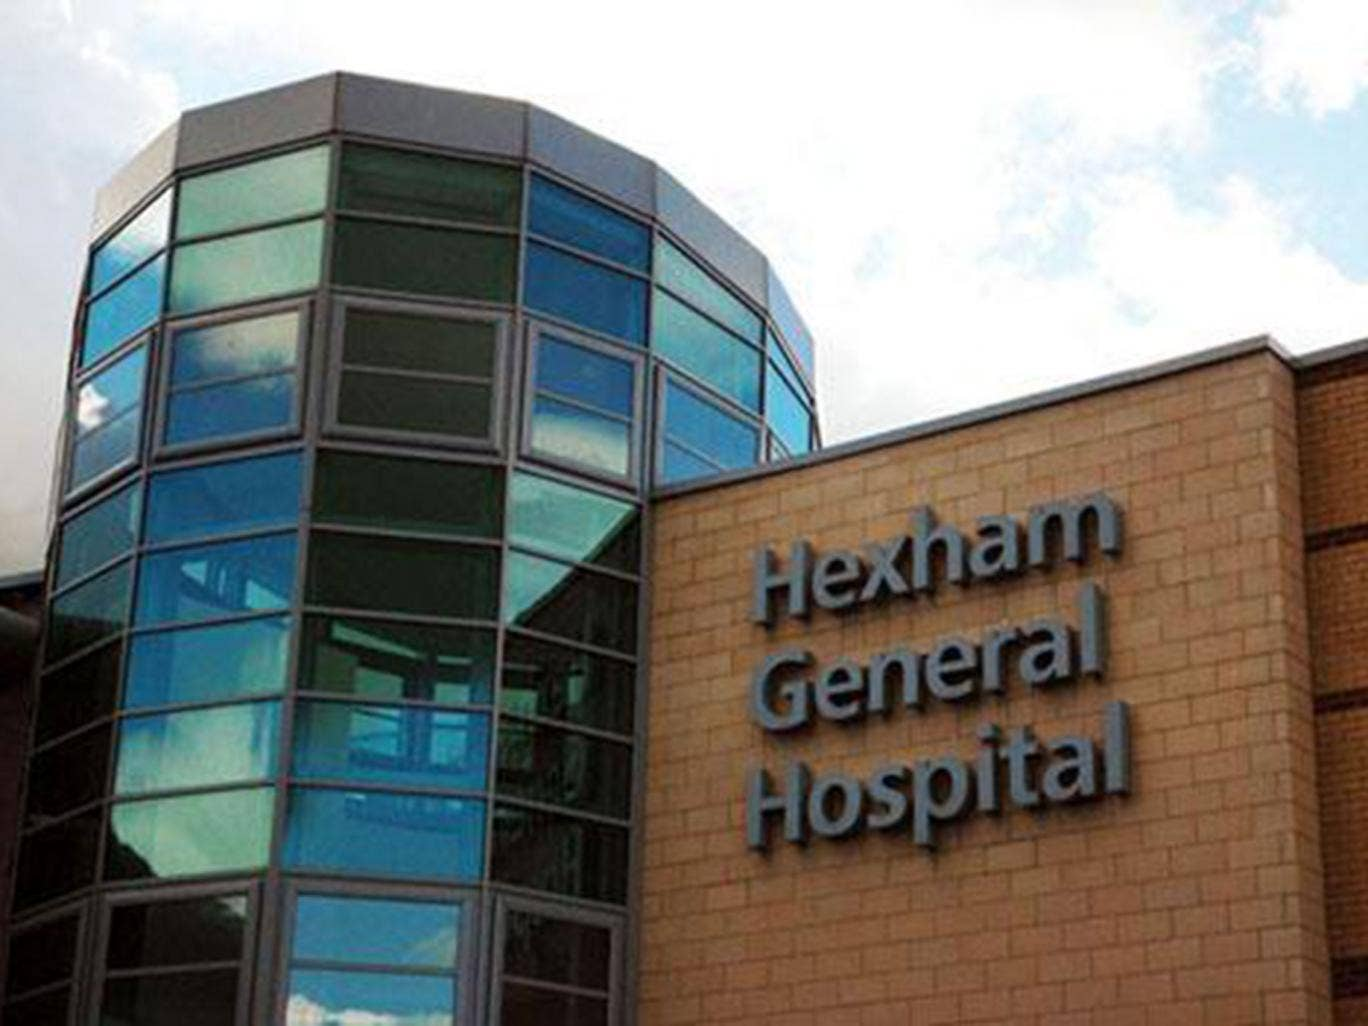 Accounts for Hexham General Hospital SPC Holdings show that it made a profit of £1.36m last year